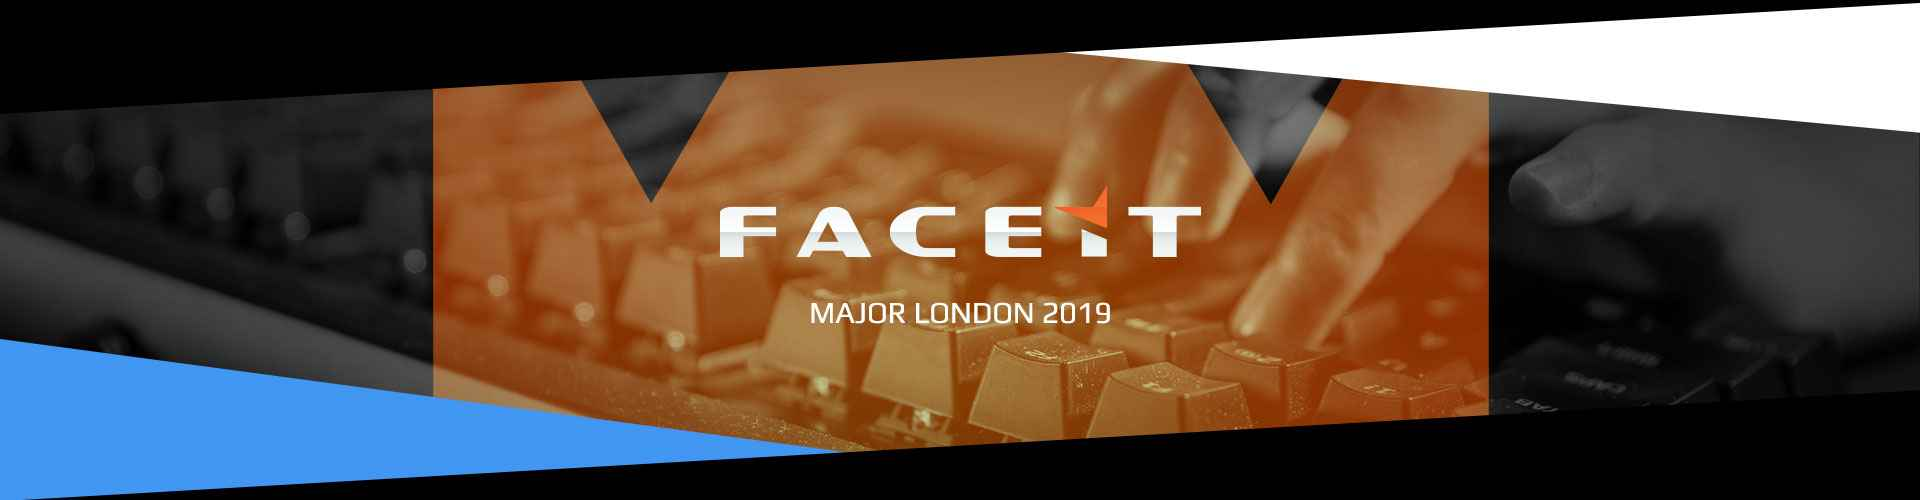 Eventsida för FACEIT Major London arrangerad av Valve